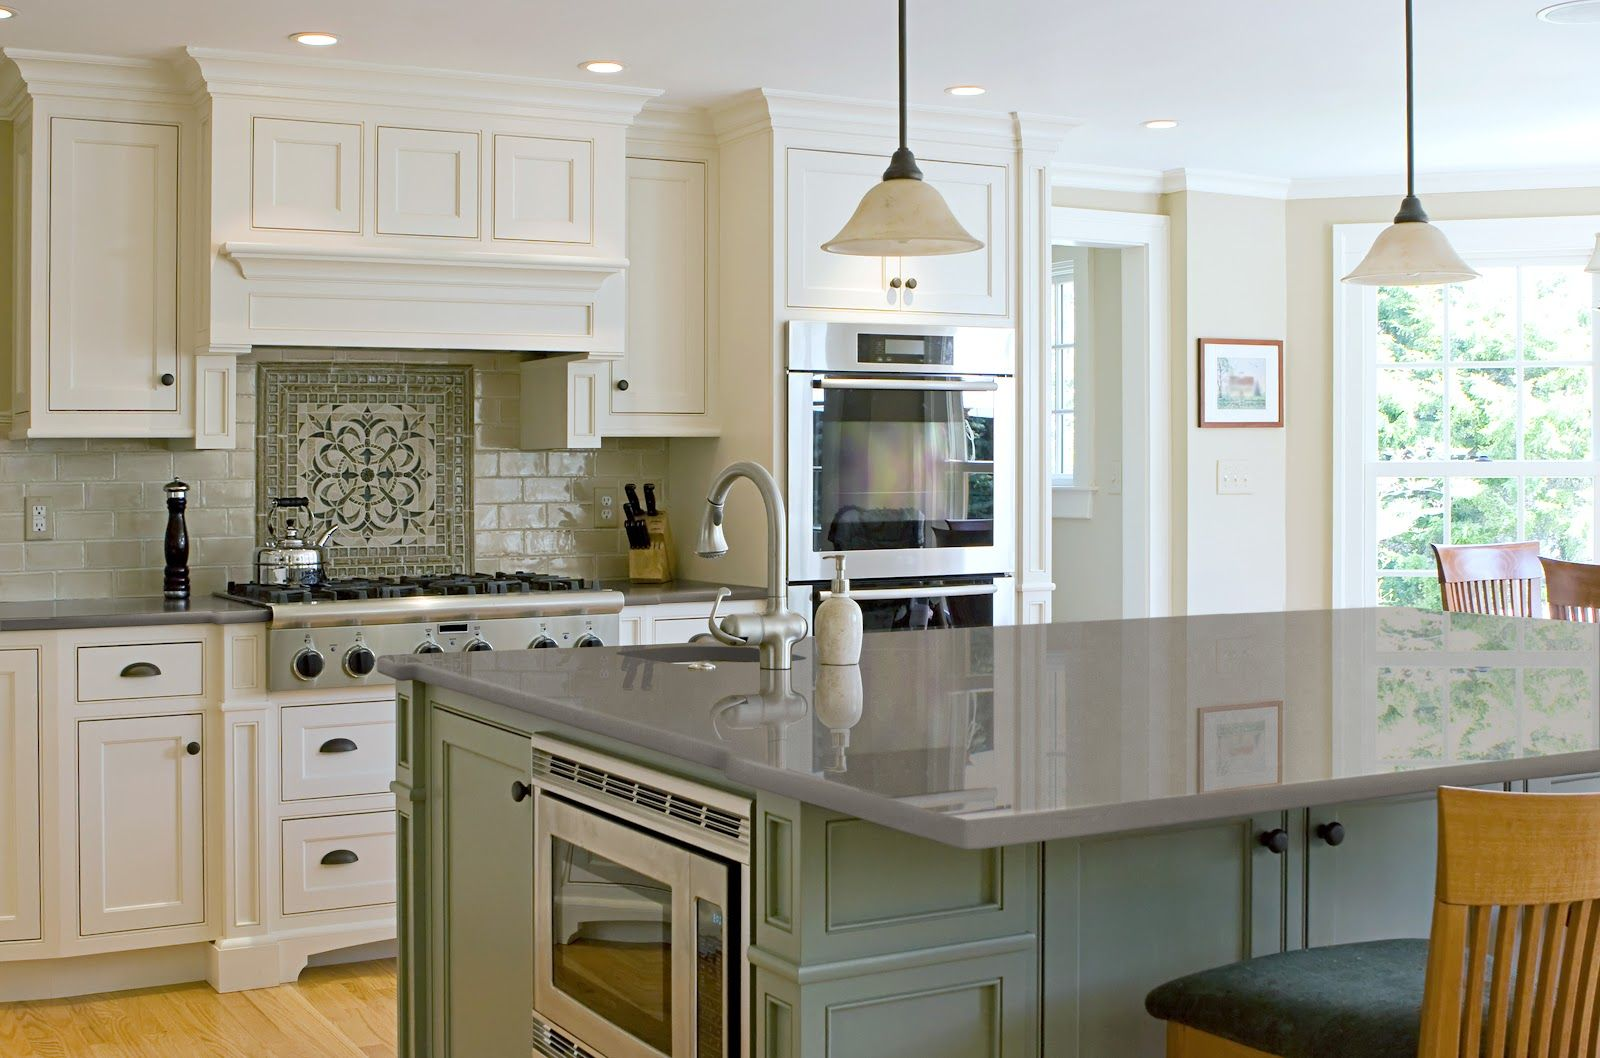 nice Property Brothers Kitchen Remodels #5: 1000+ images about The Property Brothers on Pinterest | Countertops, Soapstone and Hgtv property brothers